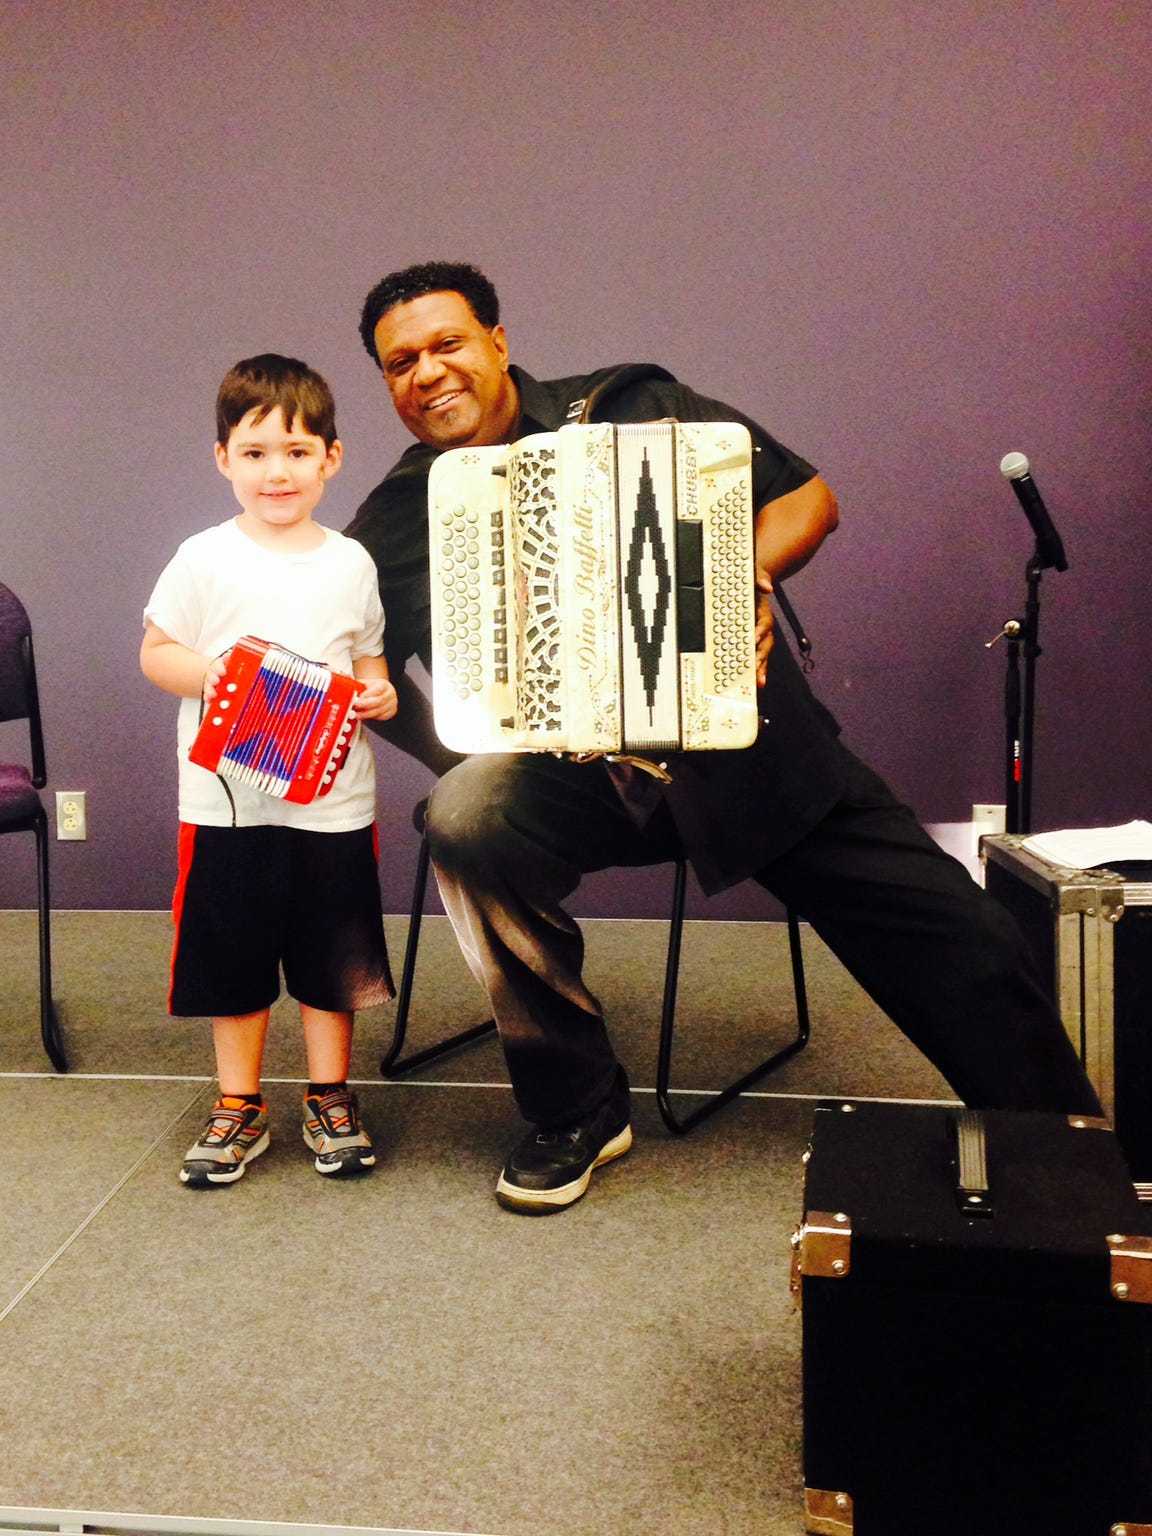 Dylan and Chubby Carrier pose with their accordions at The Daily Advertiser's Acadiana Roots event on March 24.